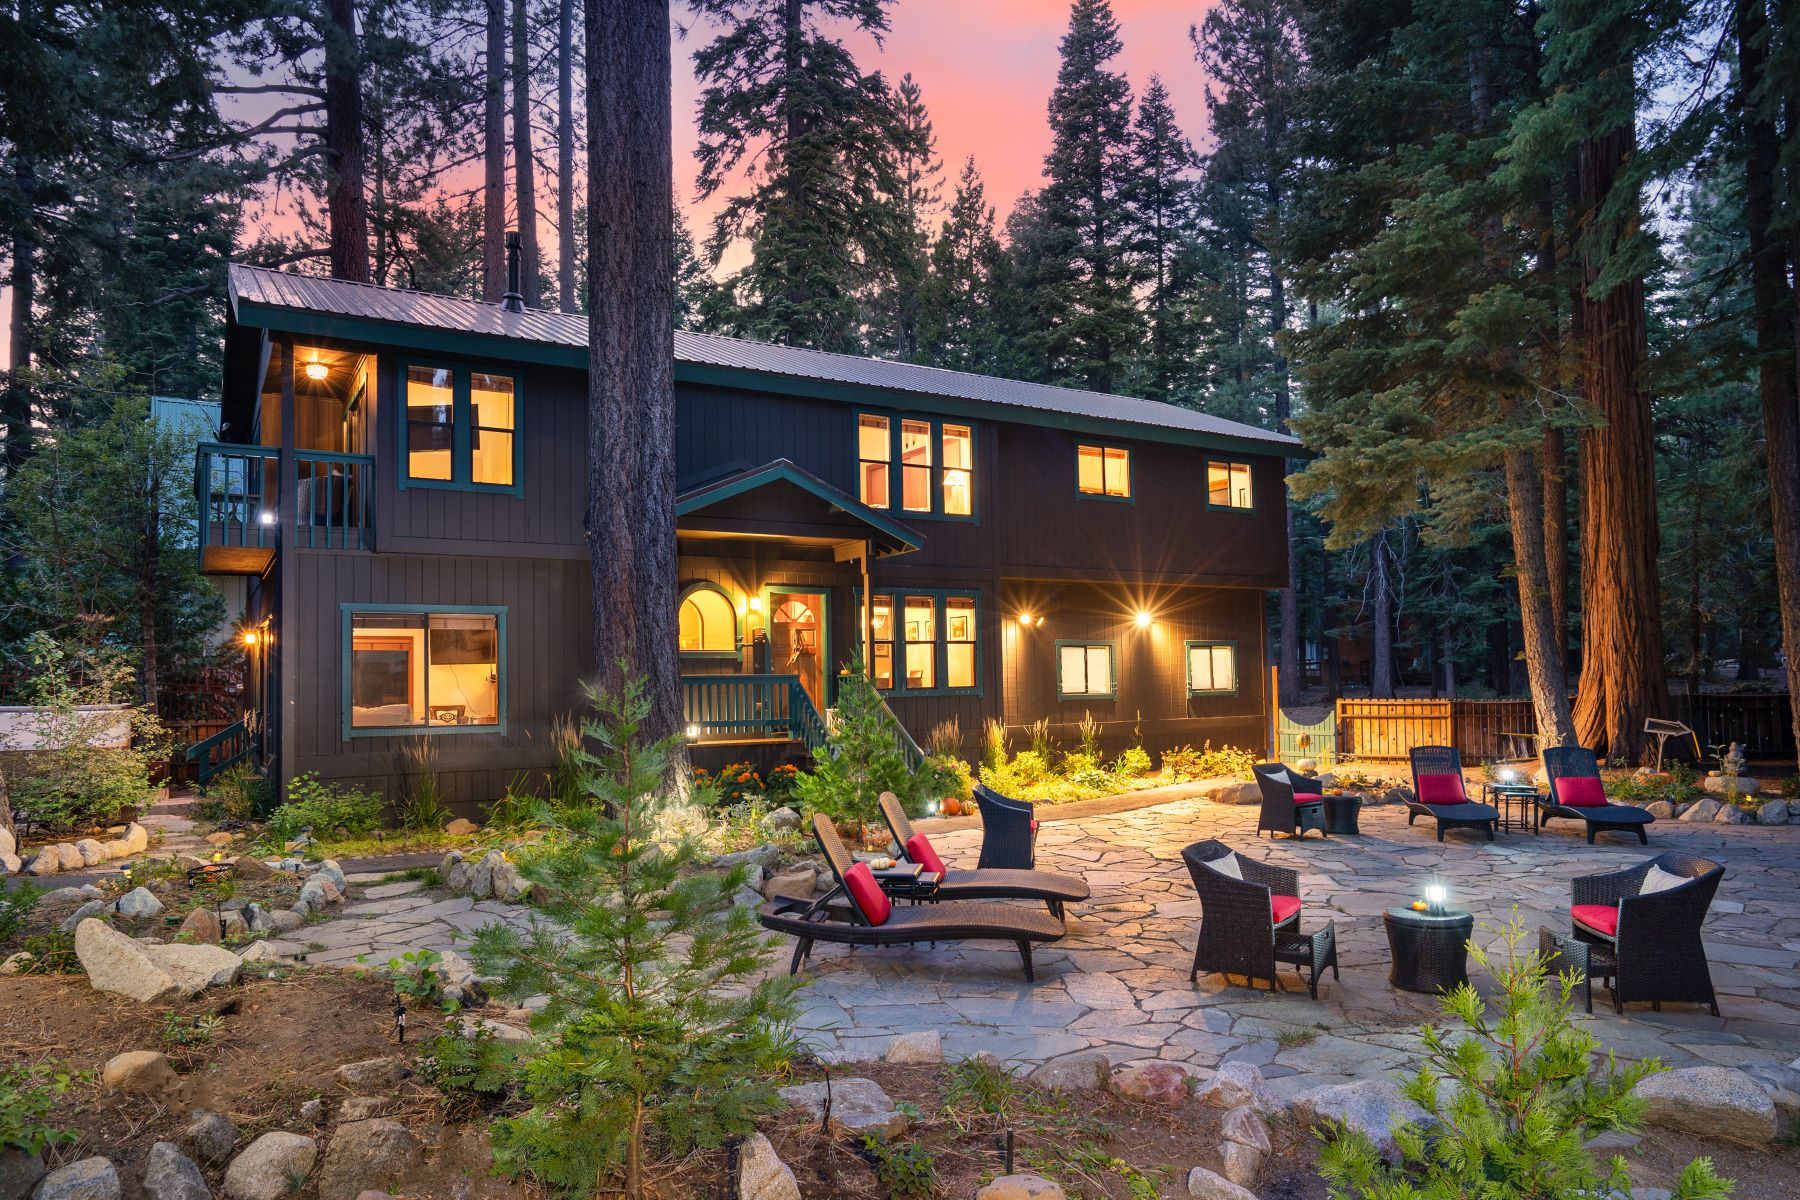 Single Family Homes for Active at Park Life In Tahoe Park 380 Fountain Tahoe City, California 96145 United States